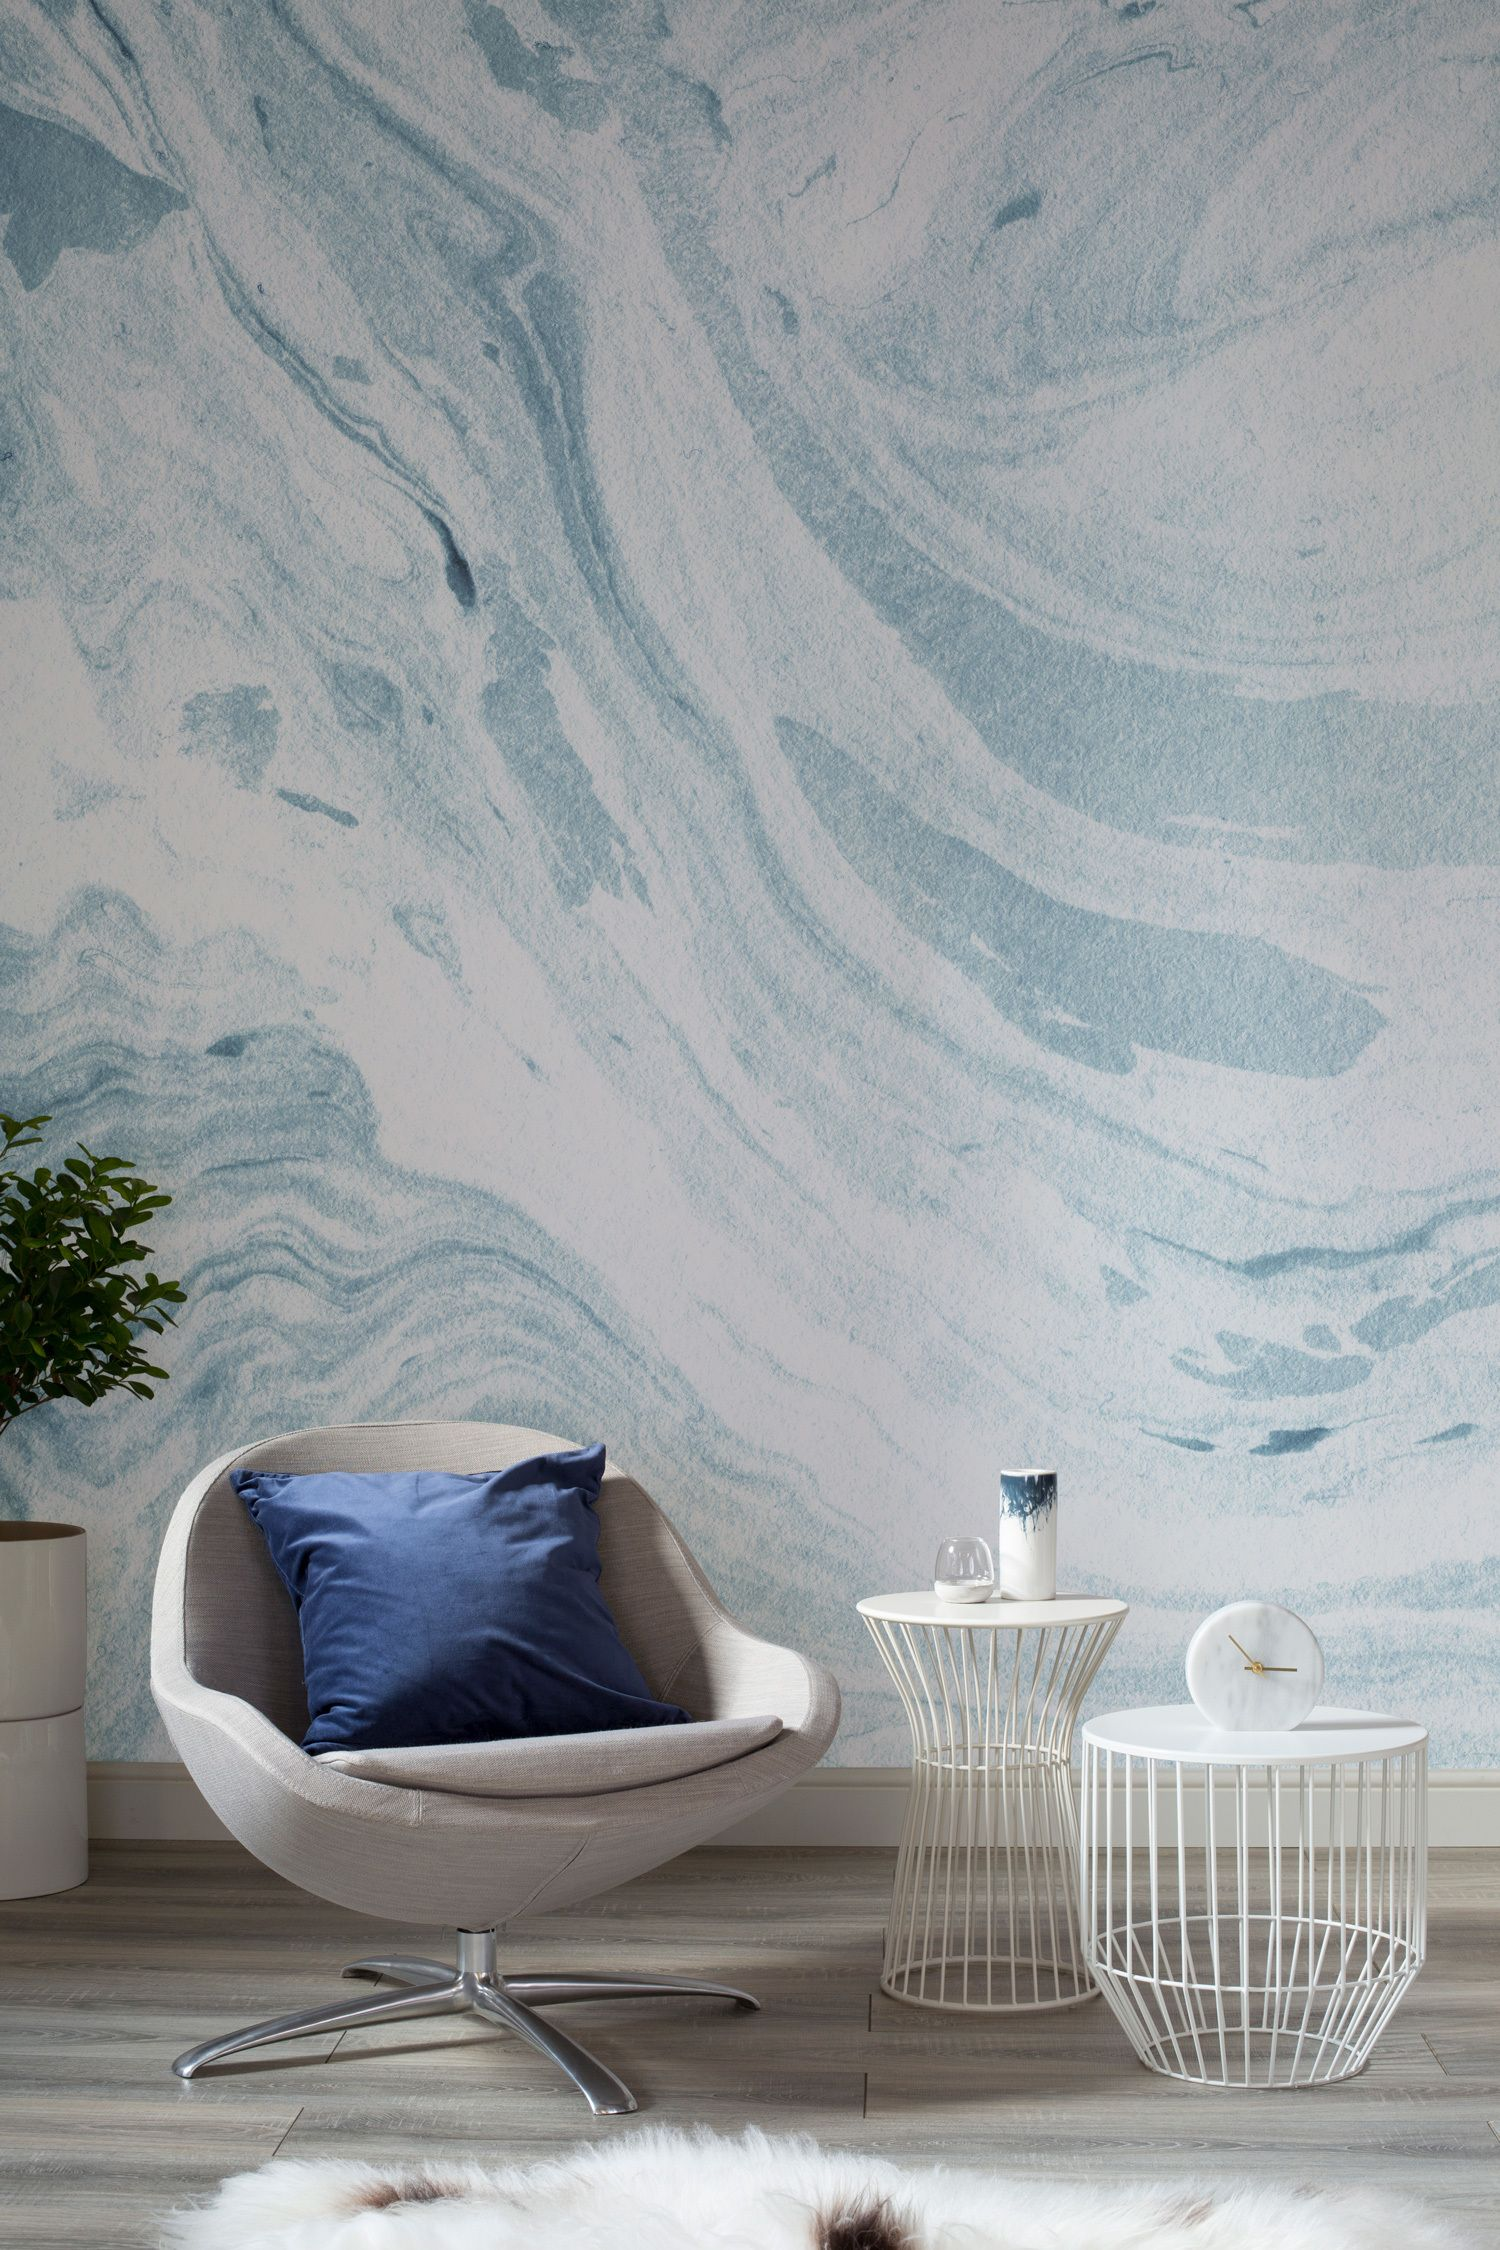 On the lookout for calming wall murals